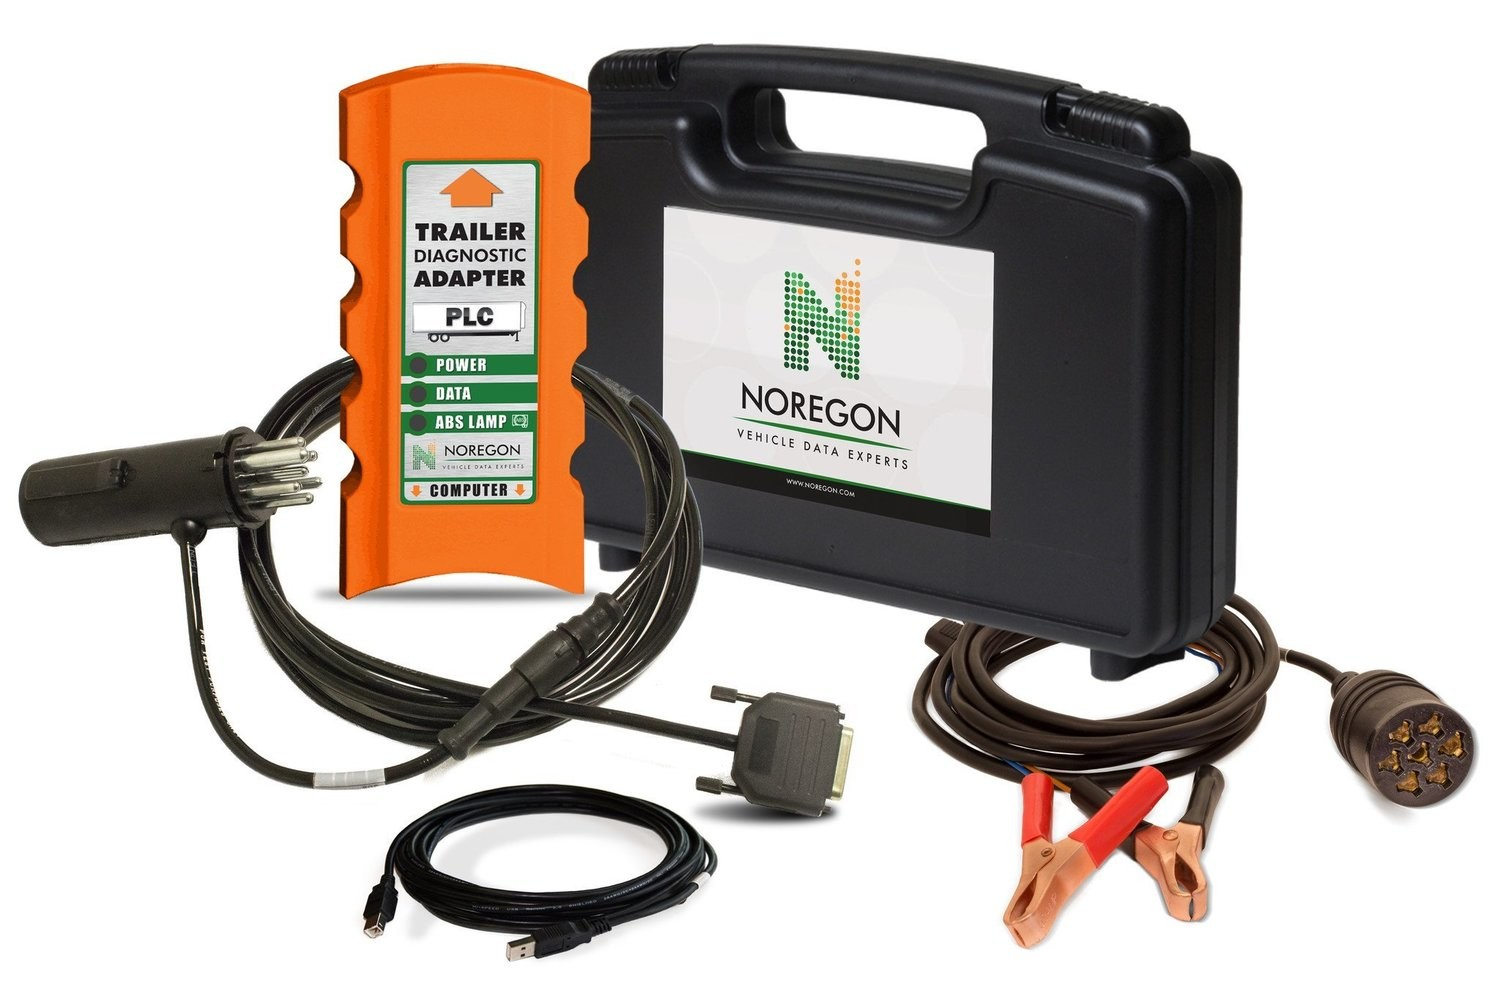 JPRO Trailer Diagnostic Adapter Kit